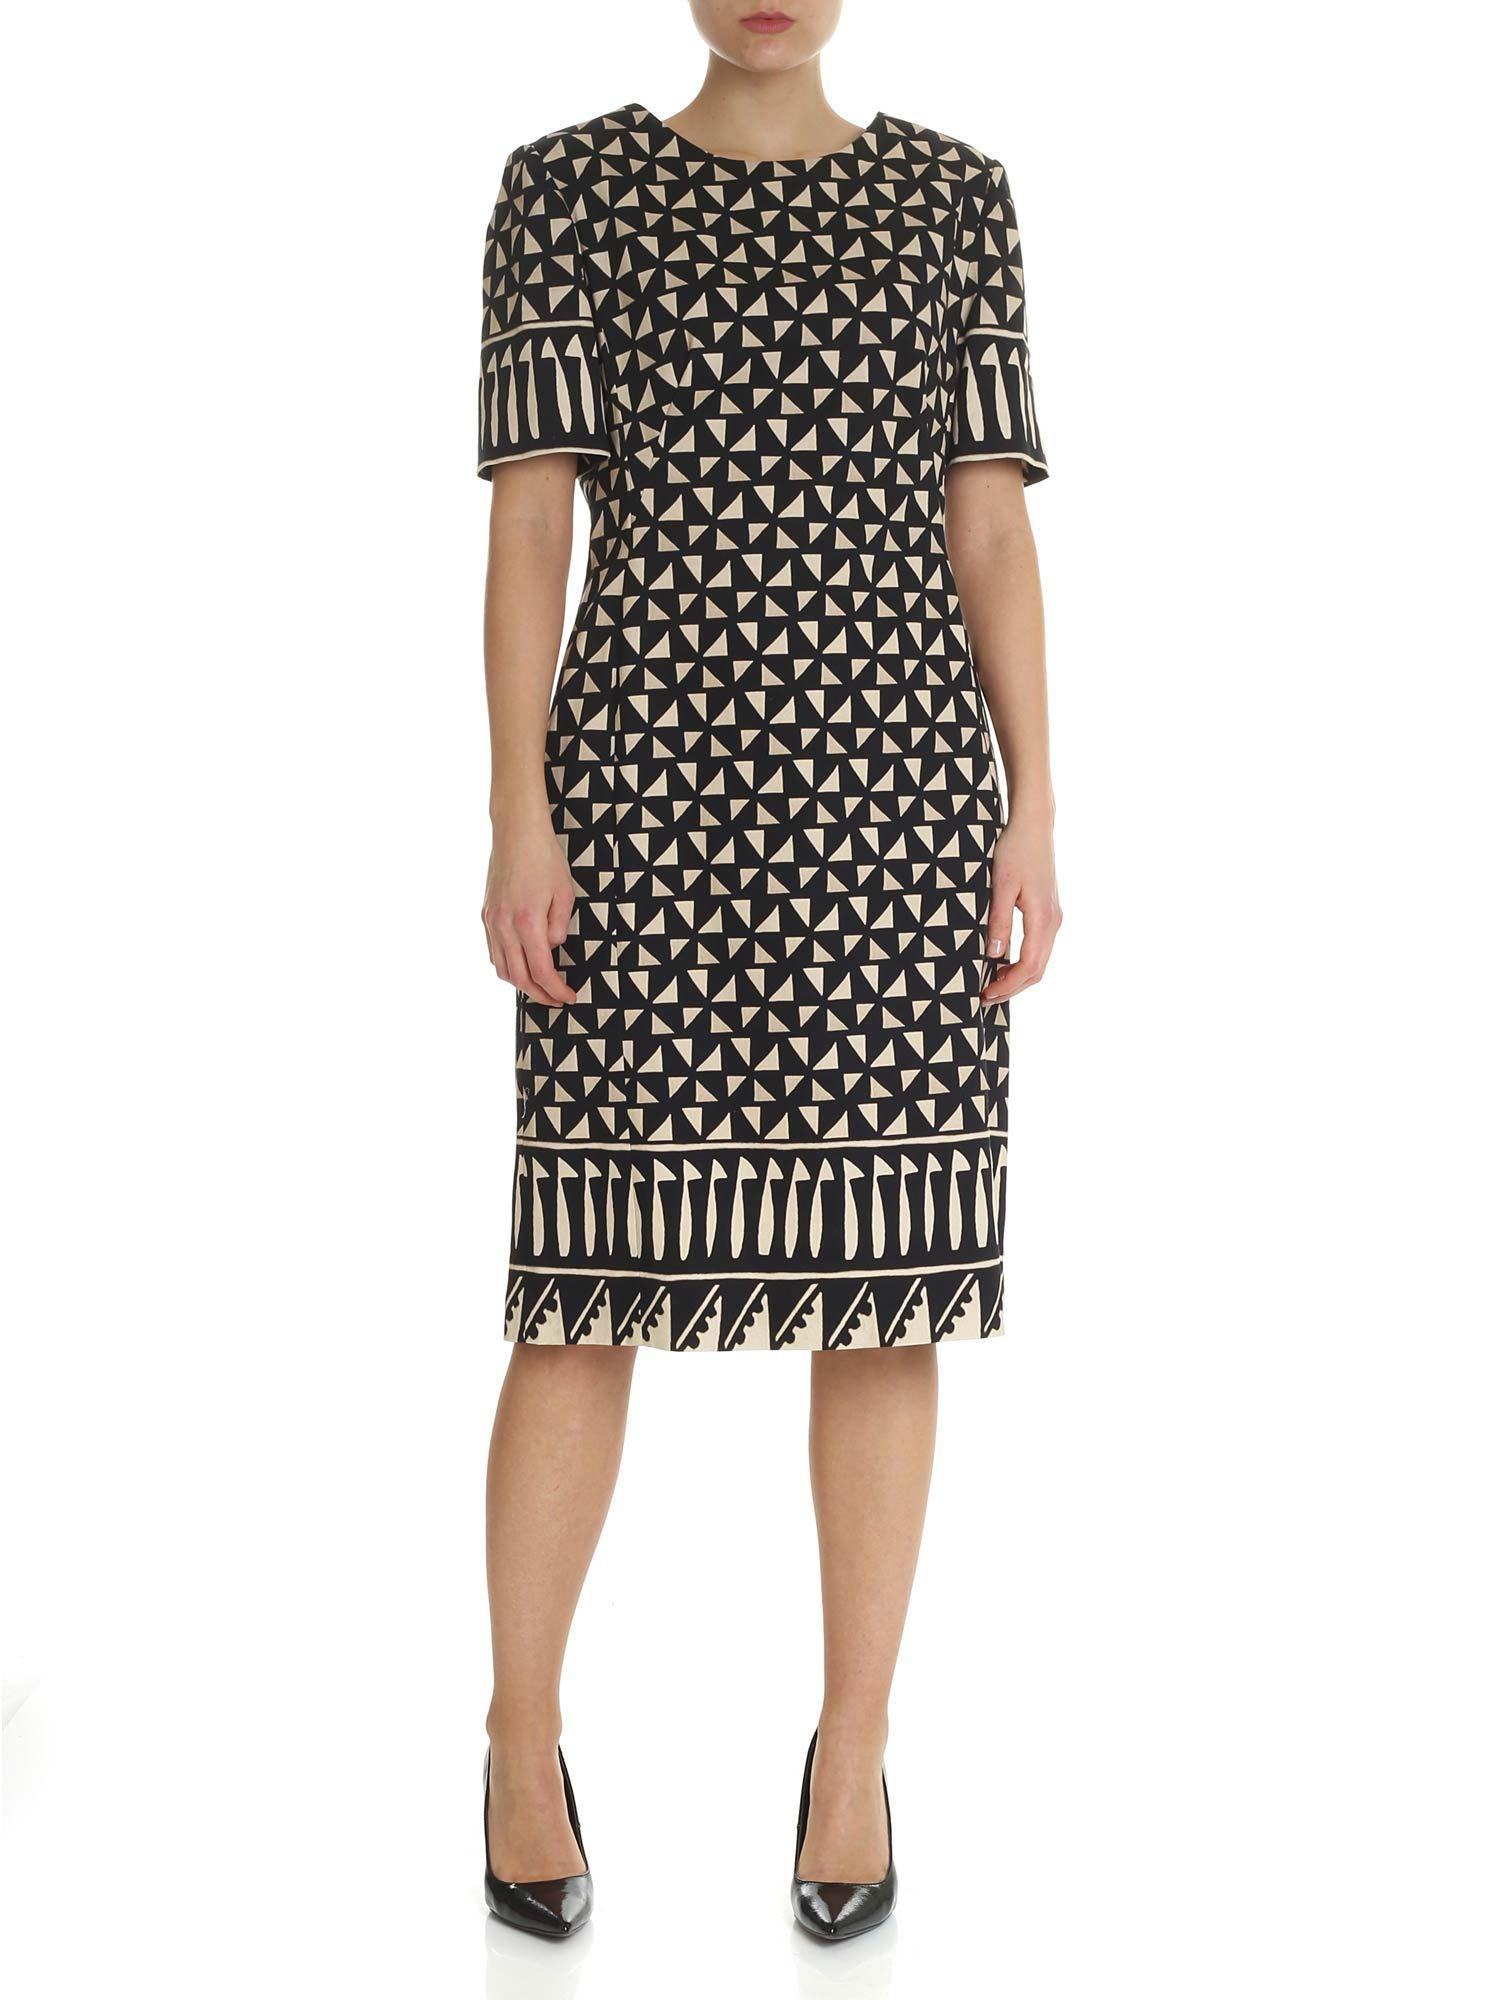 746b9f62b8c4 alberta-ferretti-black-Black-Dress-With-Geometric-Pattern.jpeg